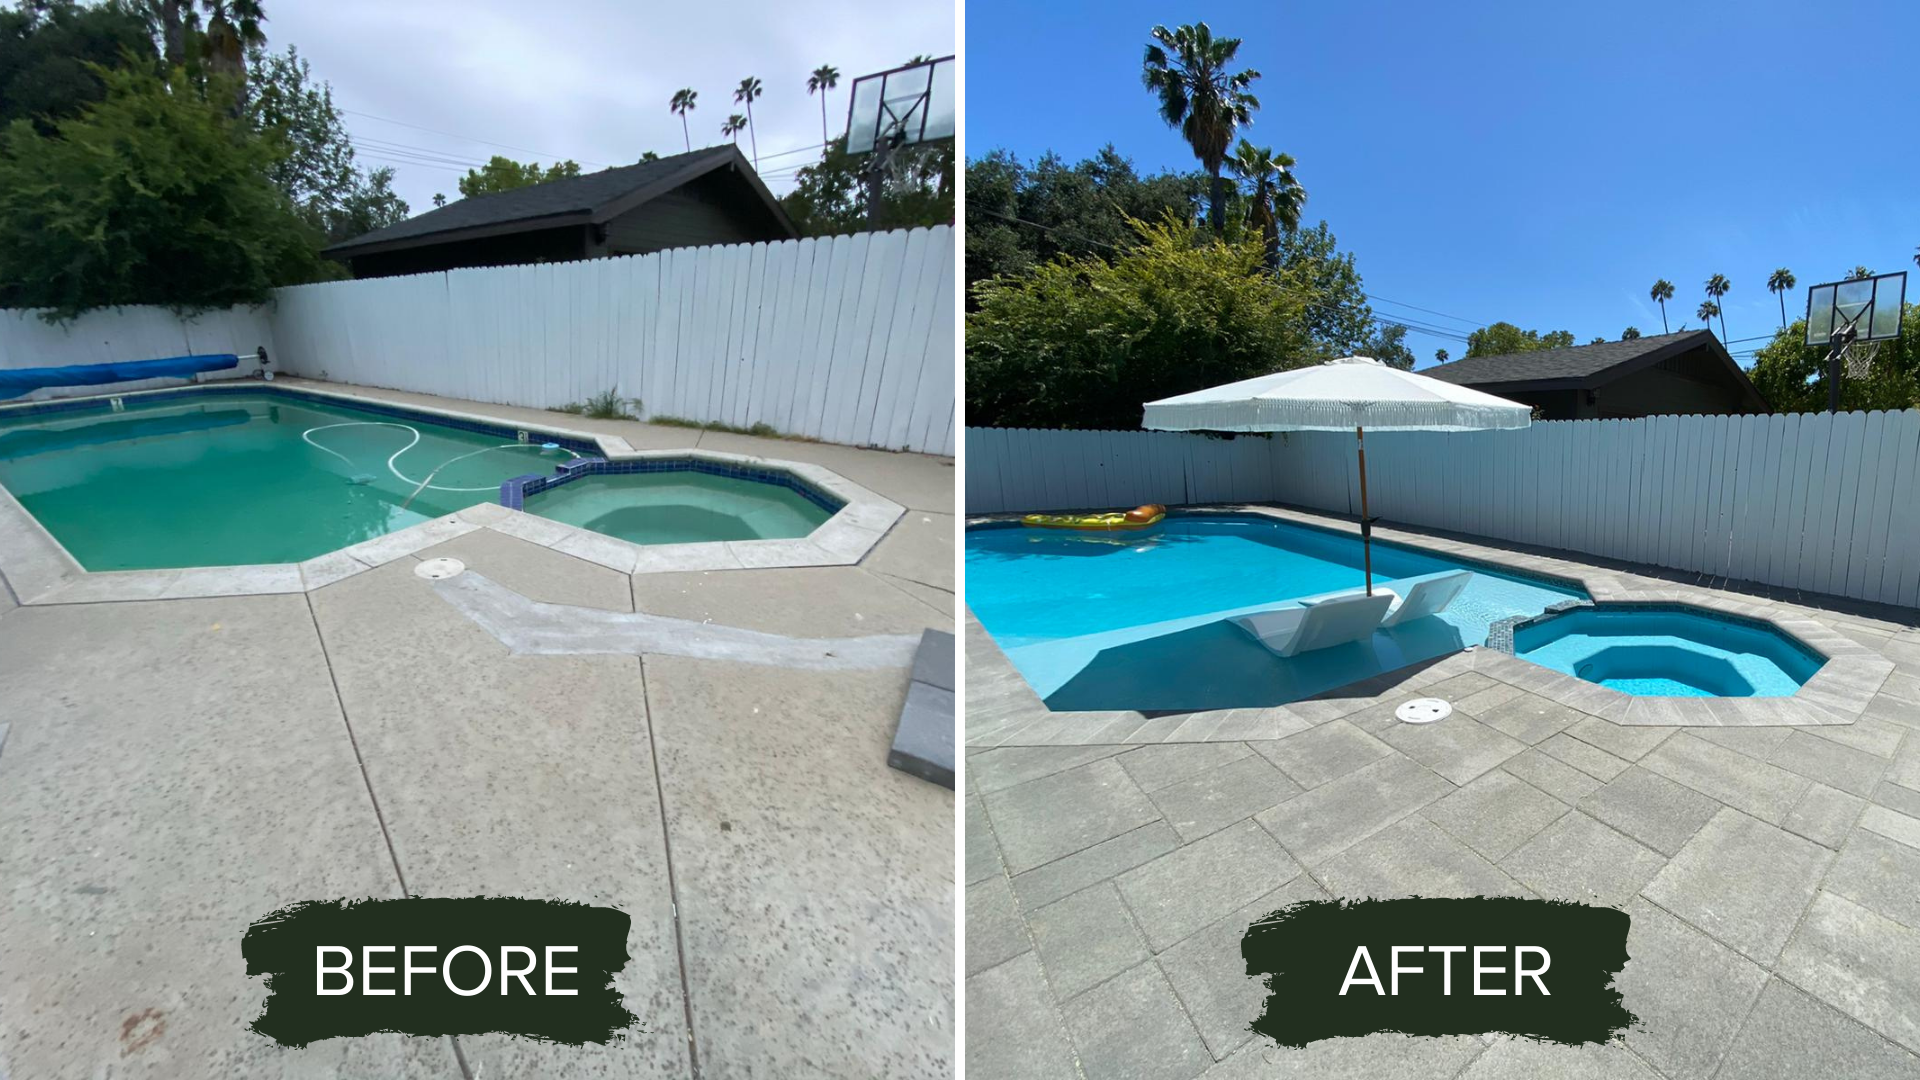 BEFORE AND AFTER POOL REMODELING